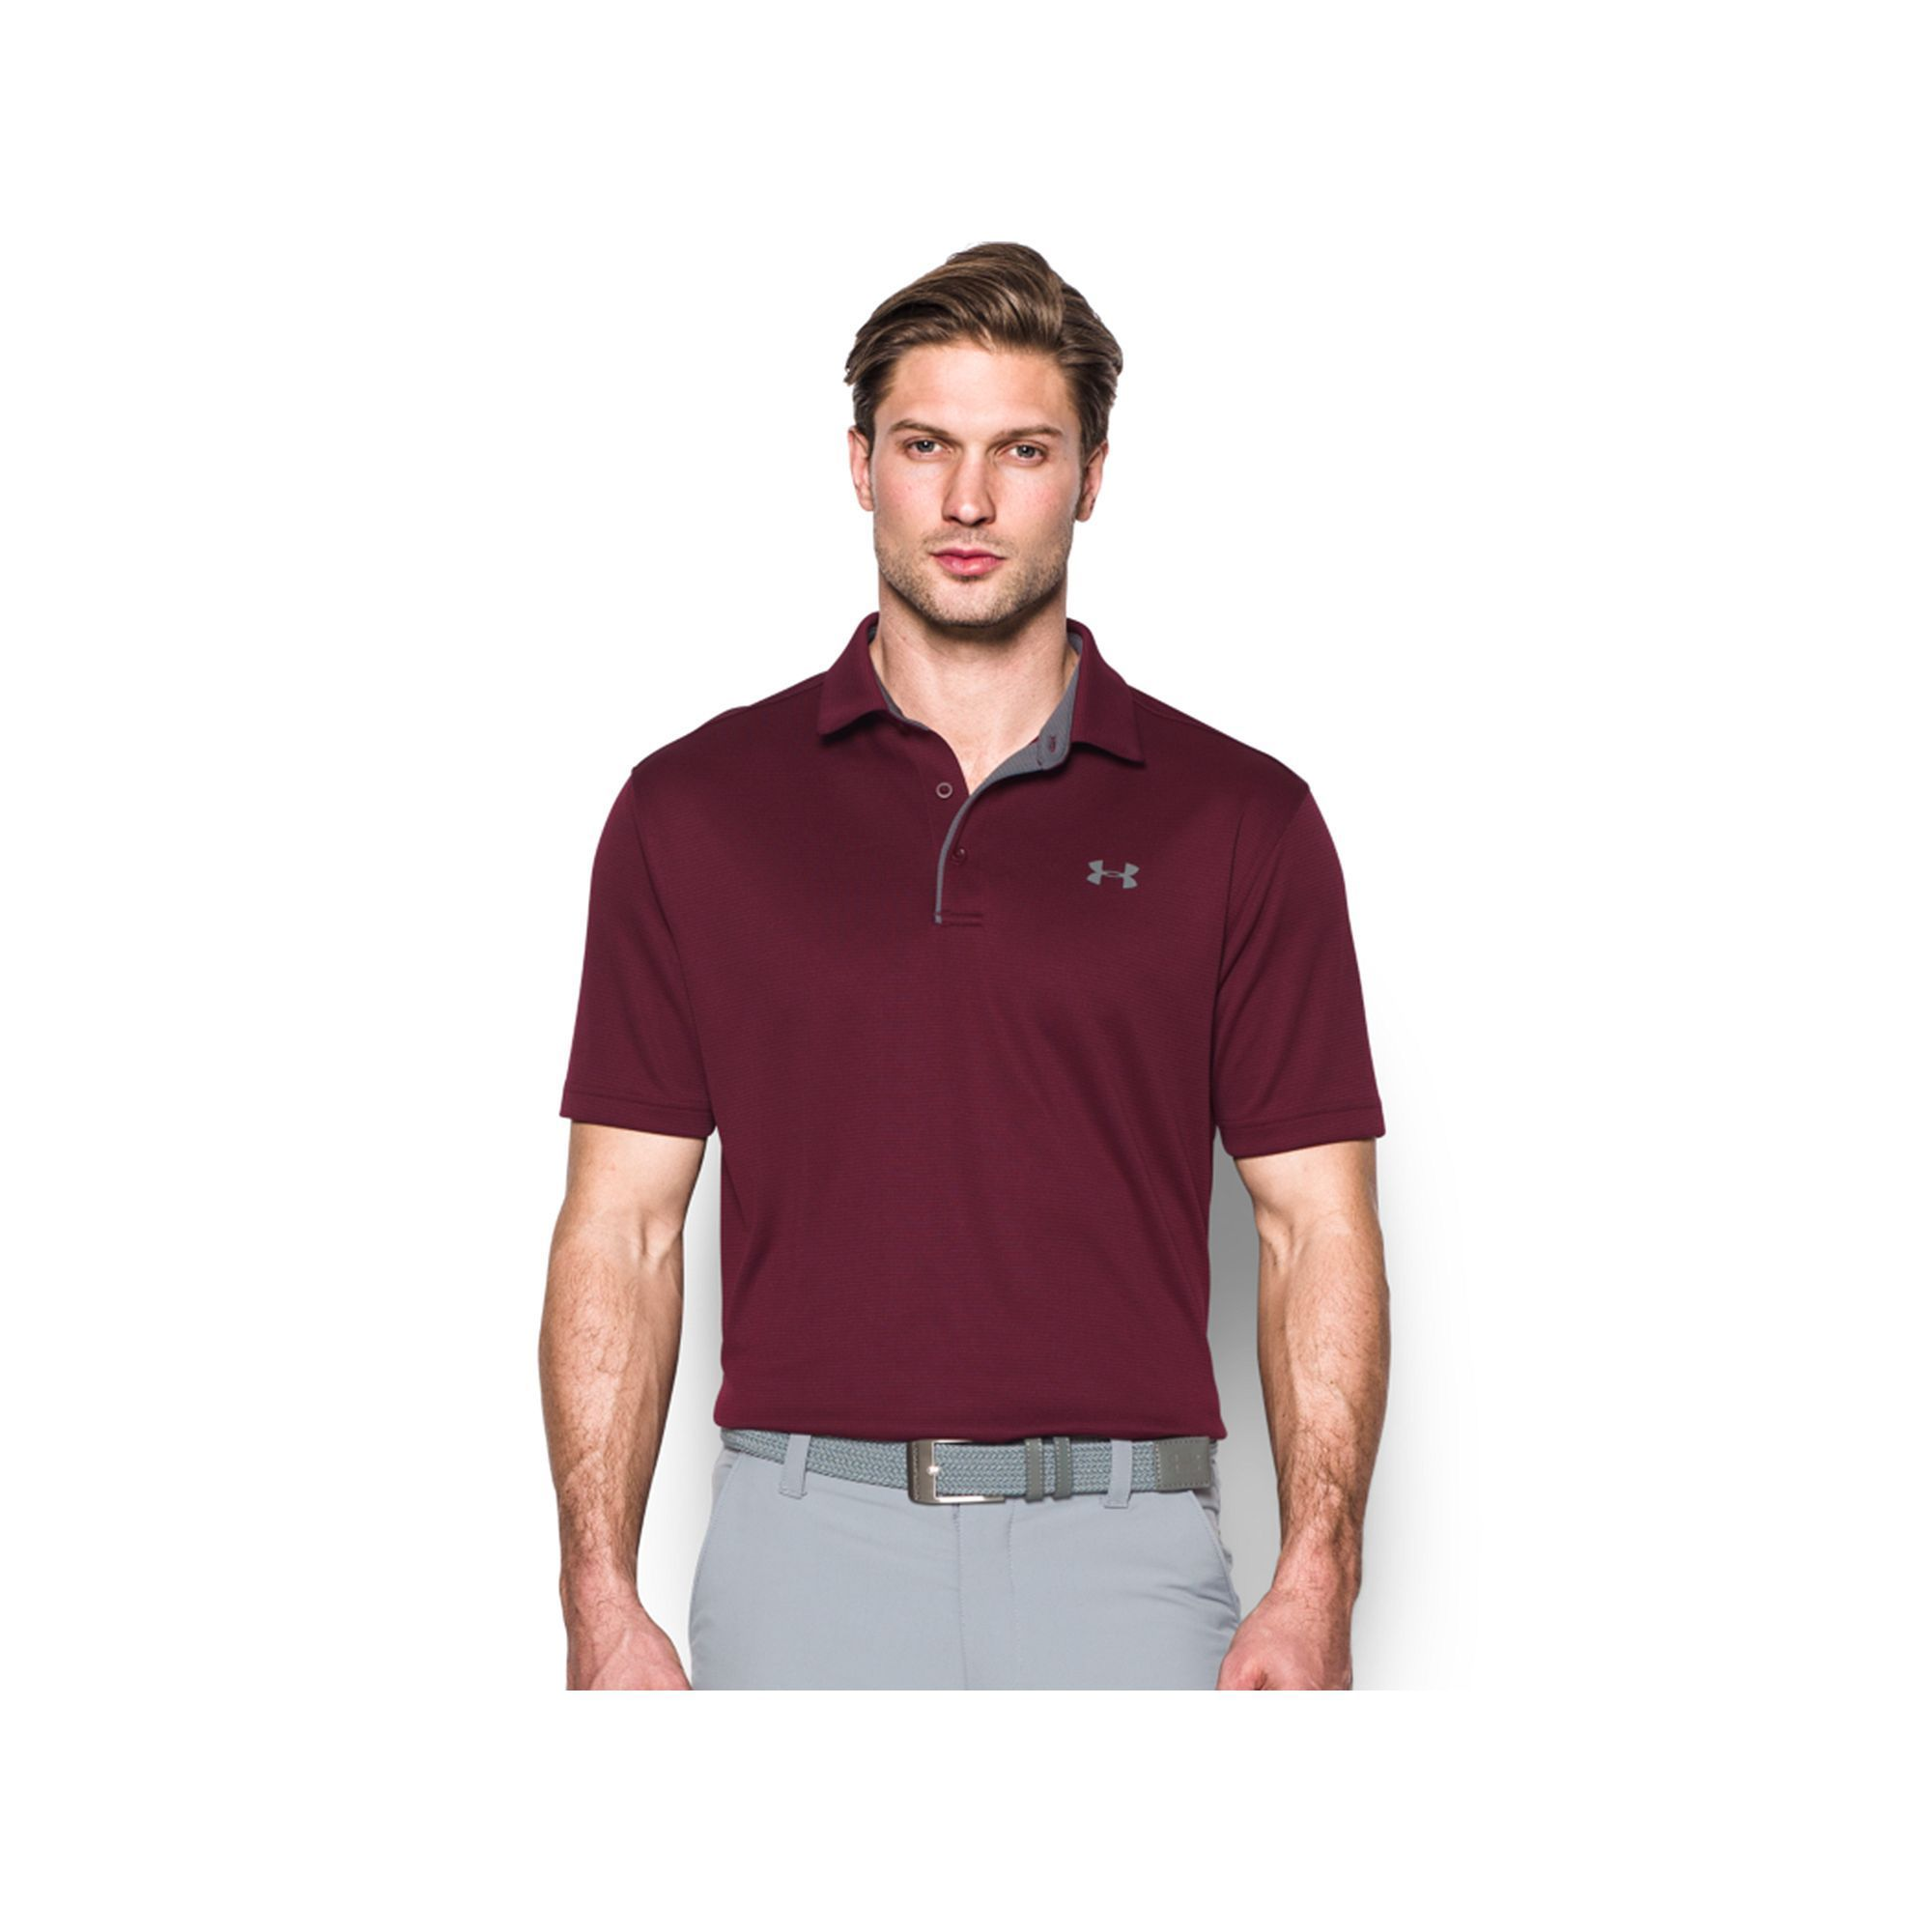 Men's Under Armour Tech Polo, Size: Medium, Dark Red